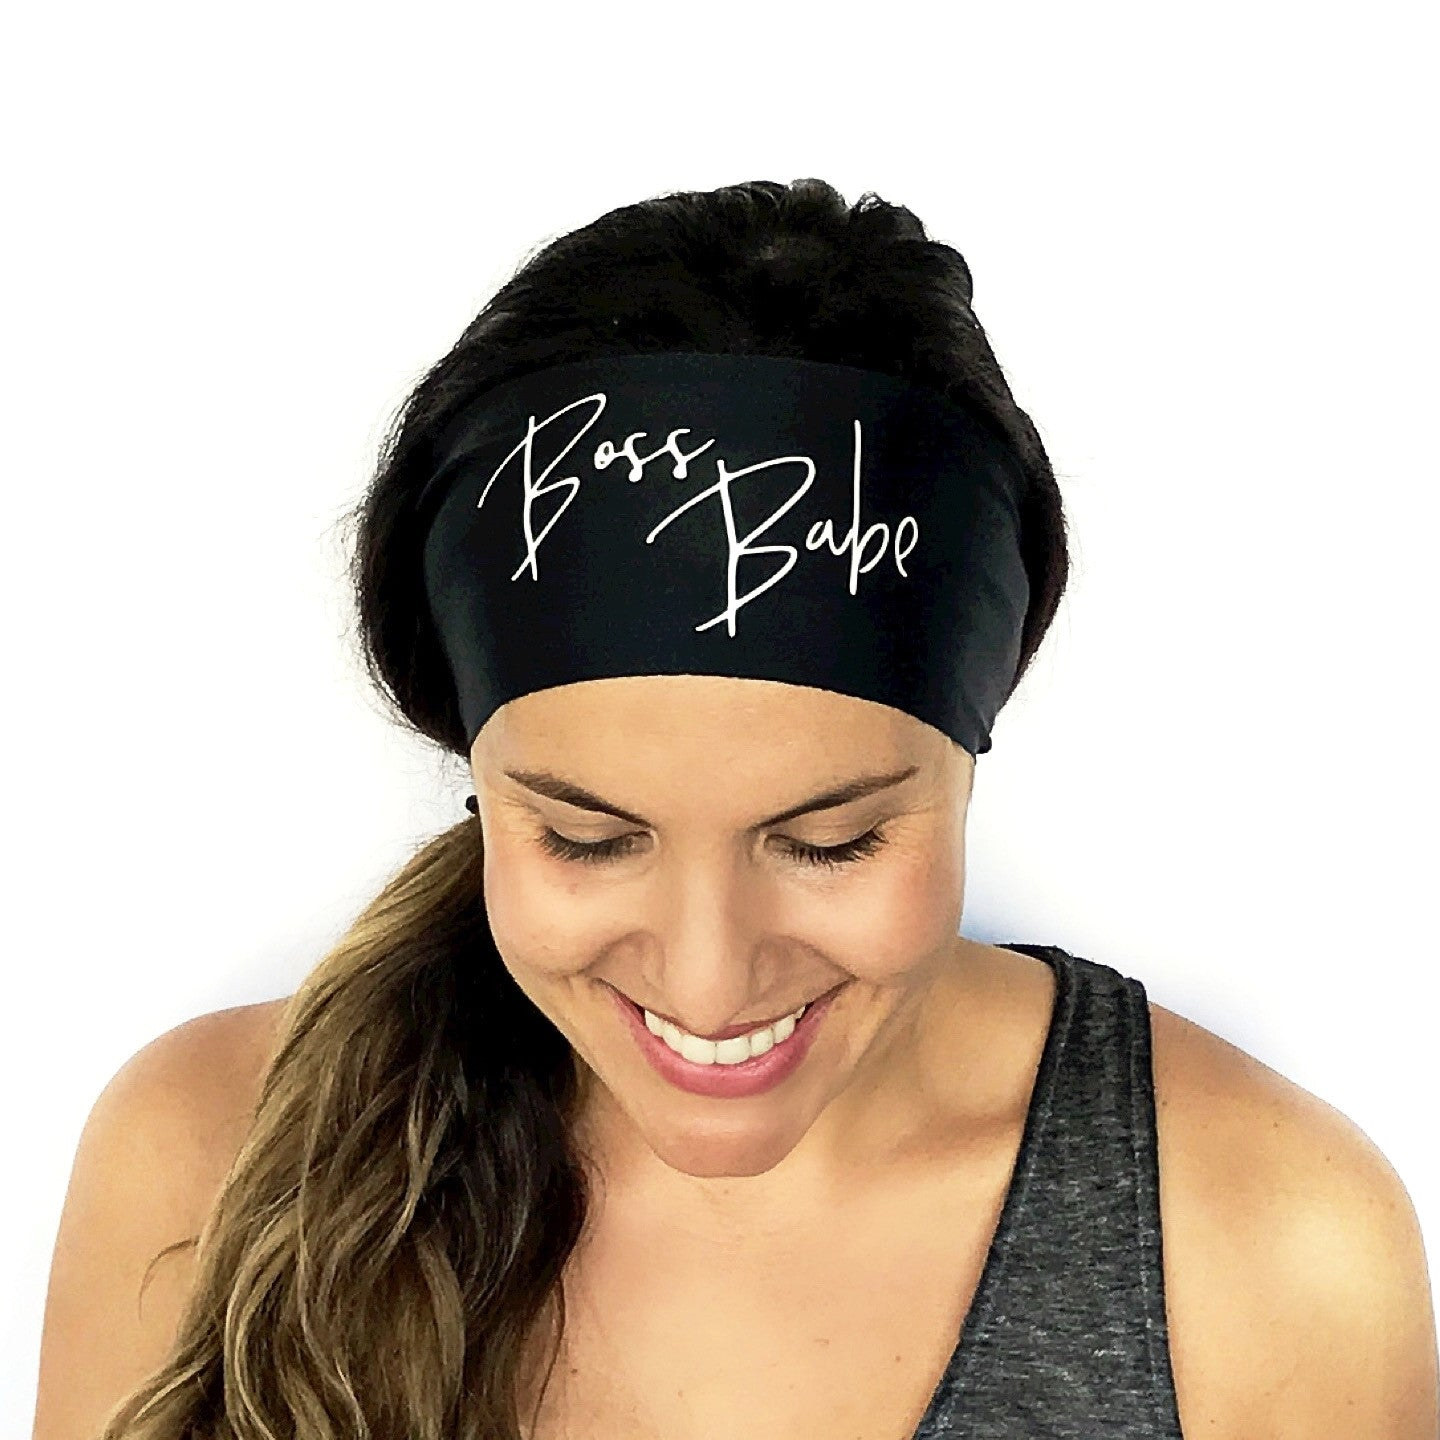 Boss Babe Scripted Headband